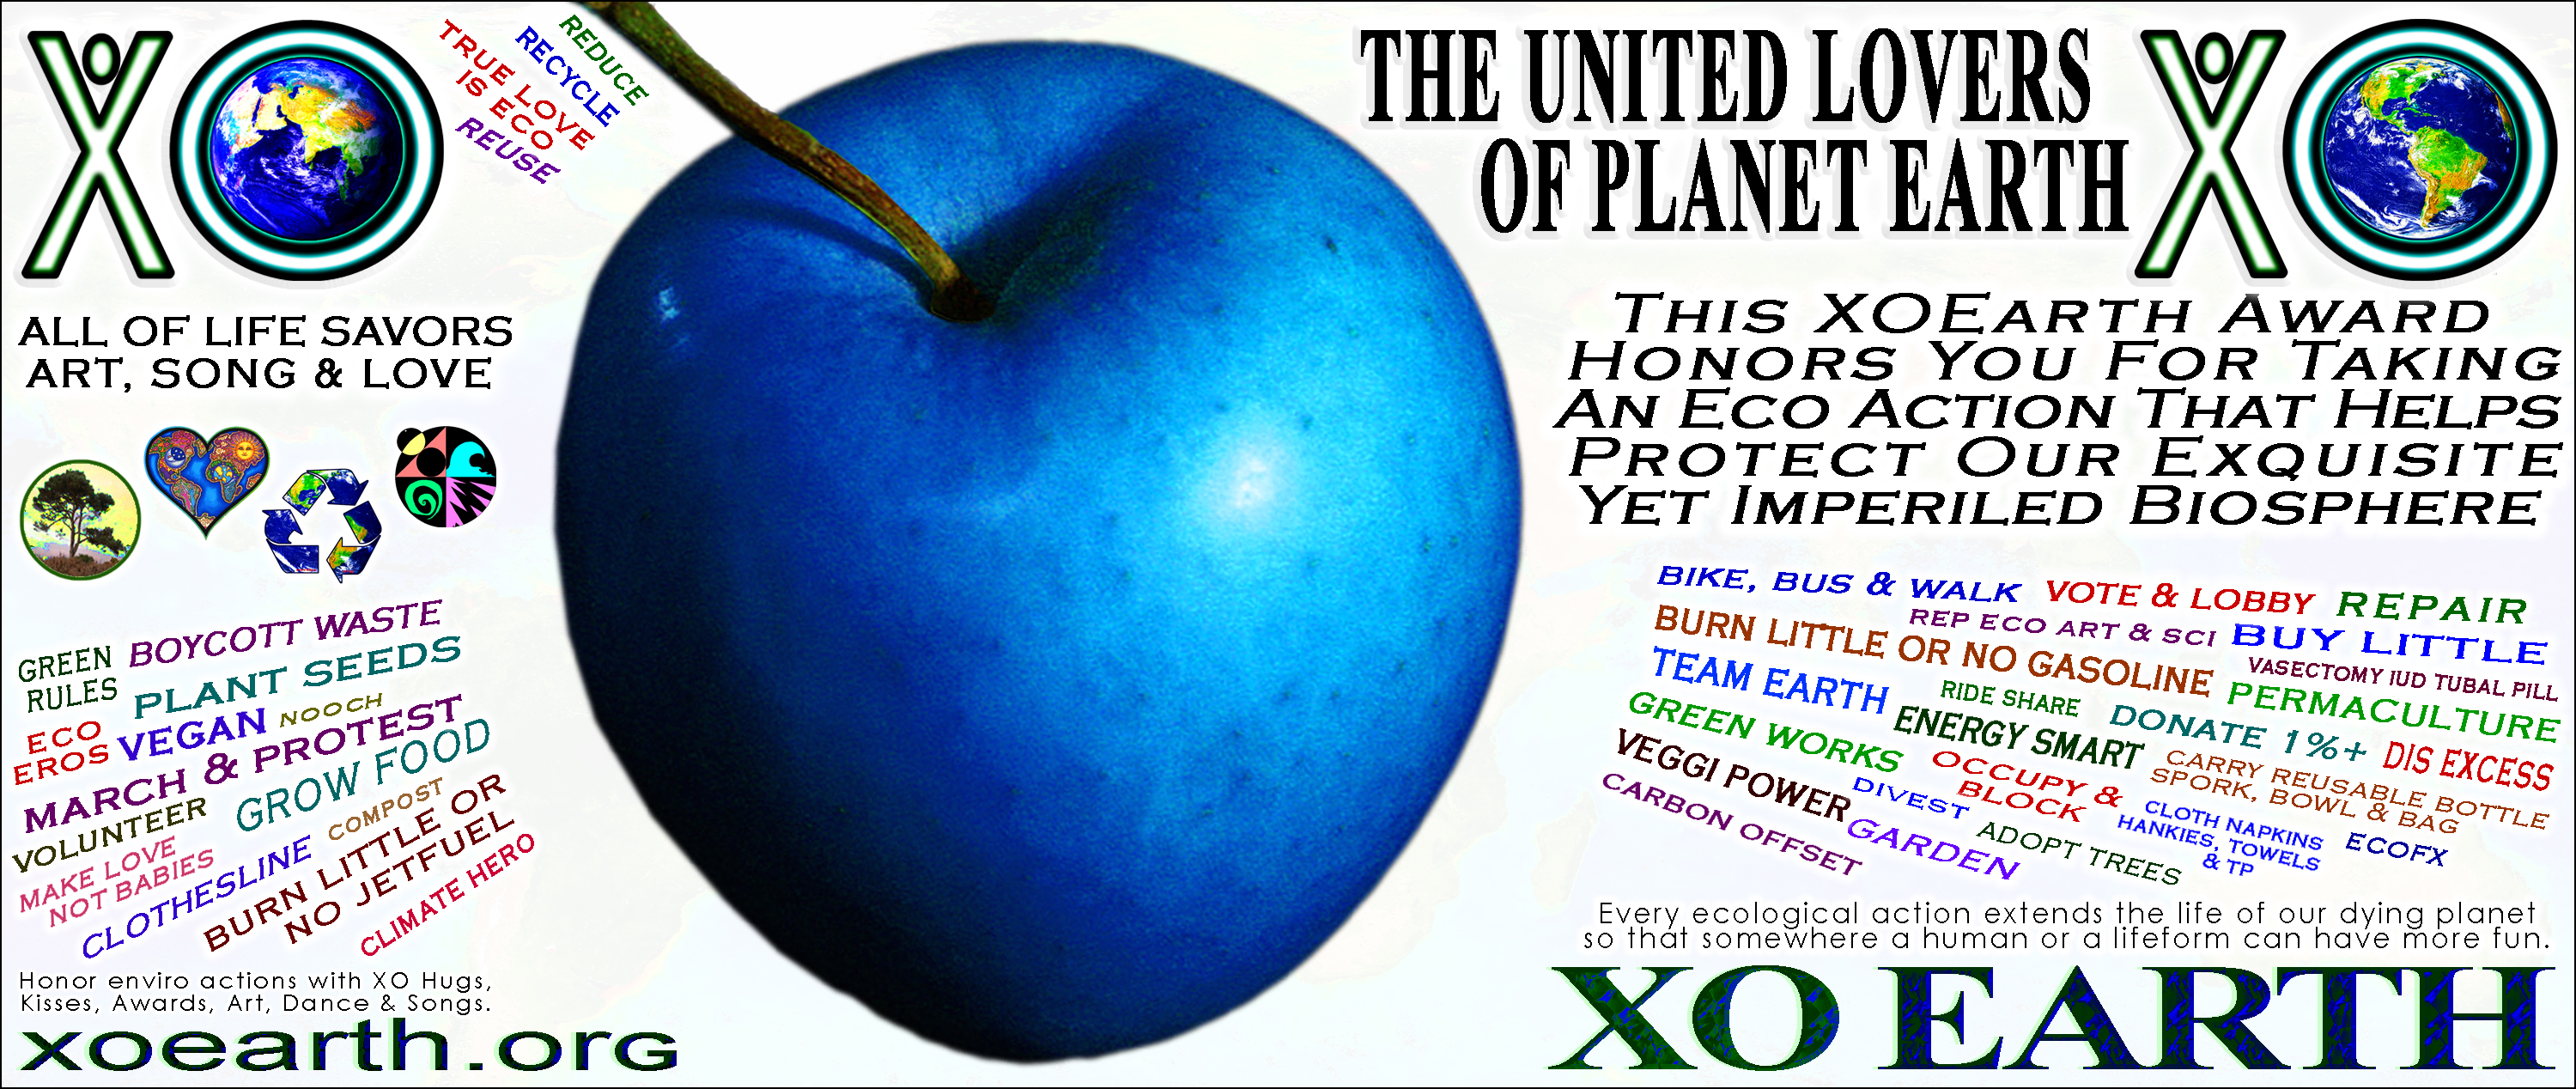 For all the life that loves to live. Click to check out xoearth.org.